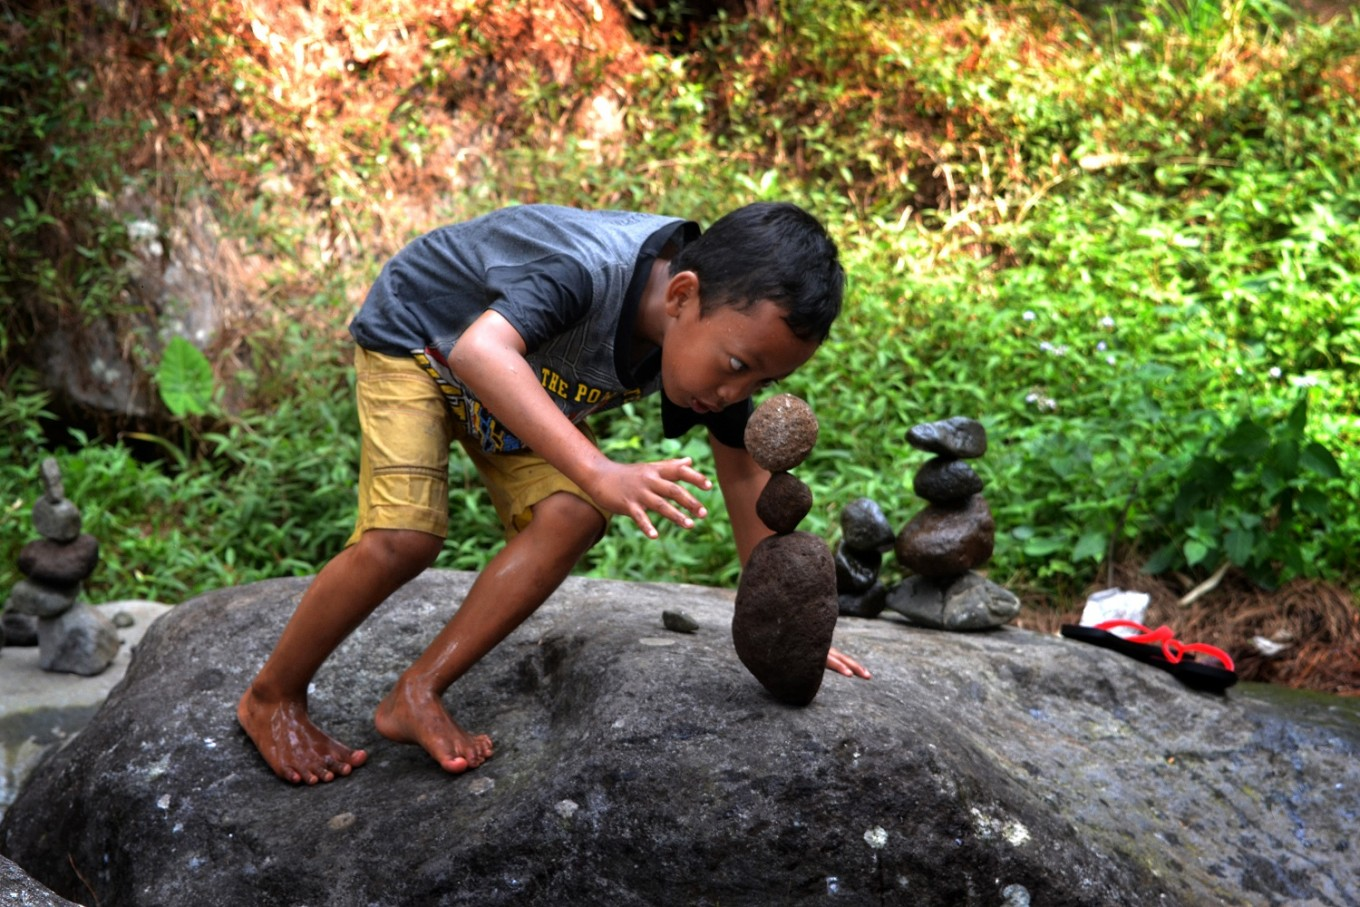 Rock balancing requires concentration and patience.